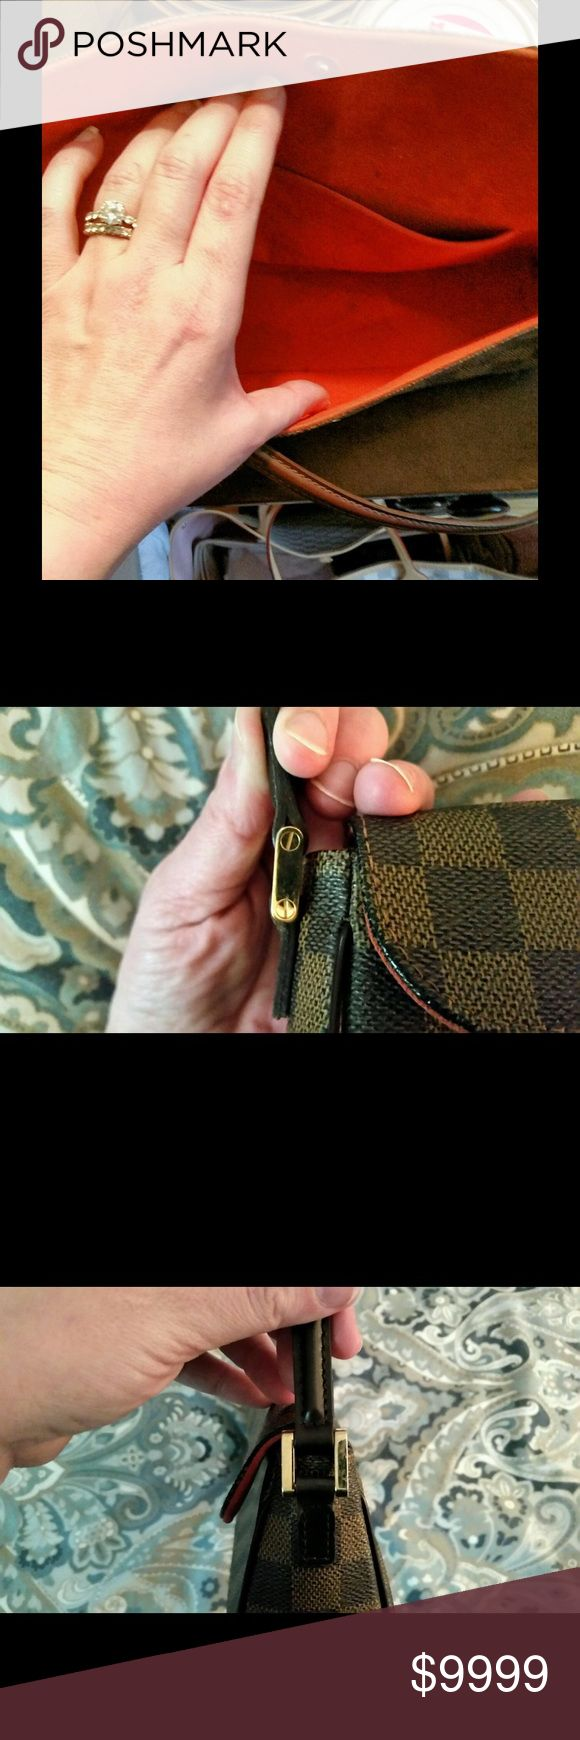 More pics Louis Vuitton Damier Ebene Recoleta Bag 100% Authentic Louis Vuitton Damier Ebene Recoleta Bag has a Microfiber lining with an interior patch pocket. Alcantara Lined Interior Pockets: One open pocket Color: Brown Hardware Description: Gold Hardware Material: Damier Ebene Width: 10.4 in. Length: 2.8 in. Height: 4.7 in. Handle Drop: 10 in. Authenticity code: Louis Vuitton FL0024 Condition: Mint-Very Used just around 3 times TRADE VALUE 750-800Overall the bag is in mint condition…